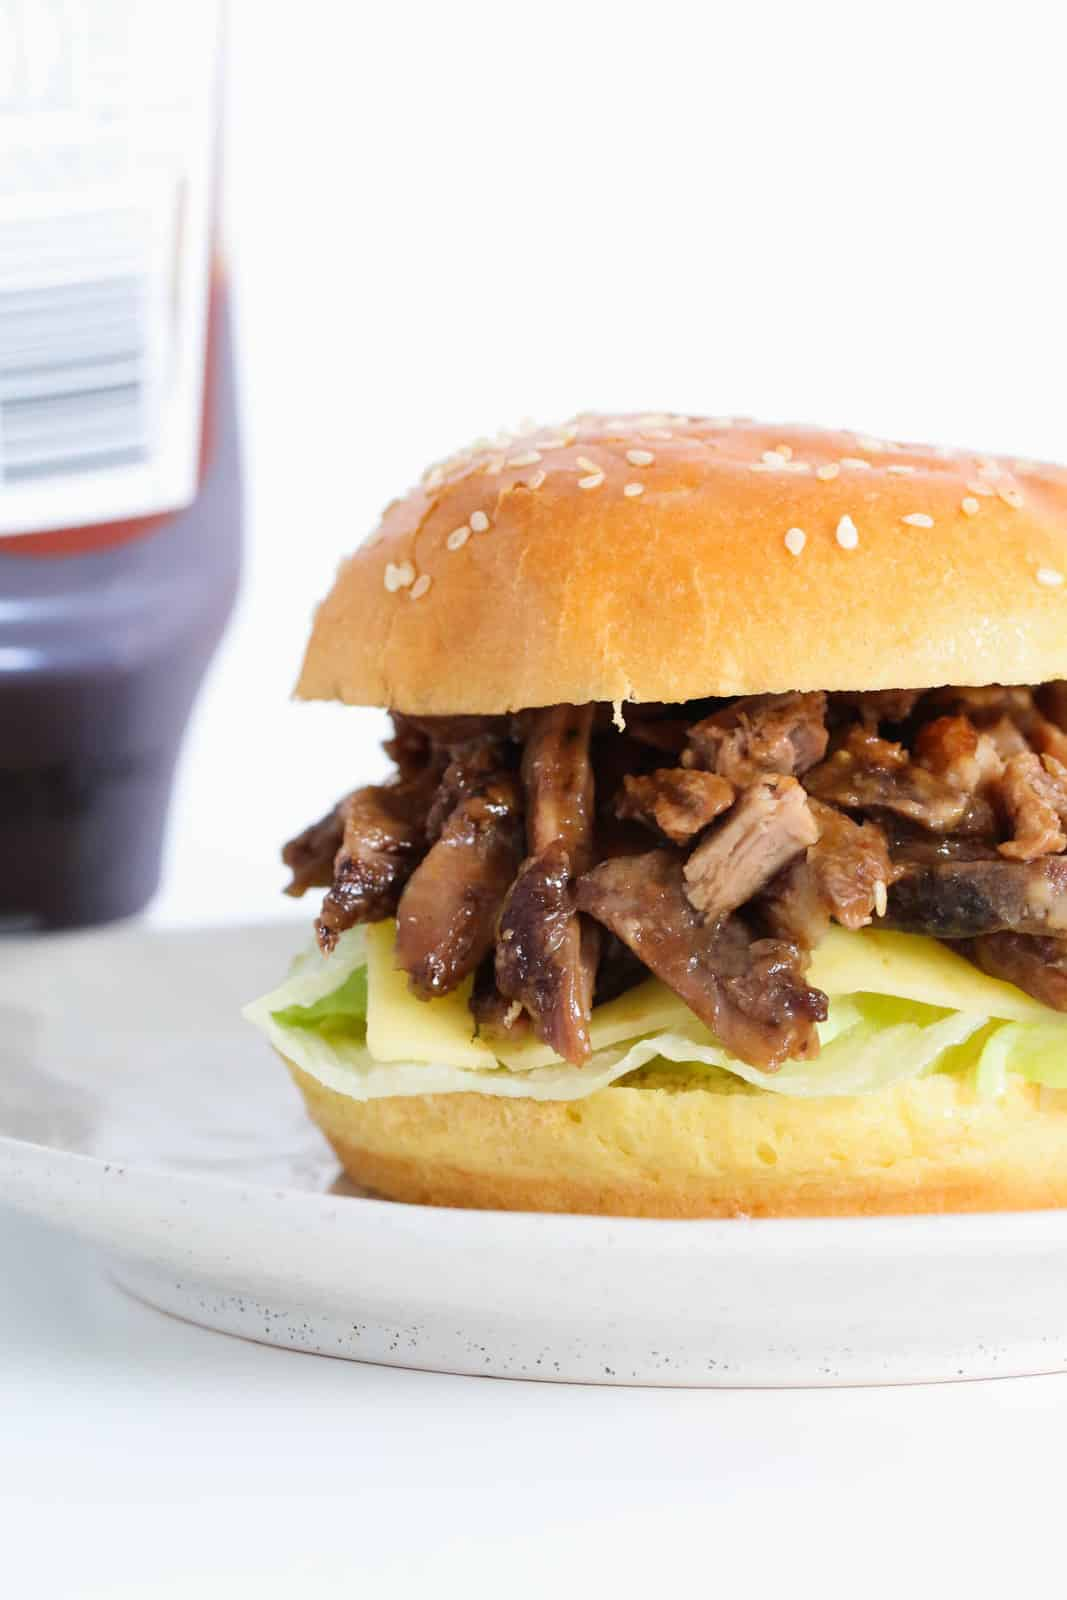 A burger filled with pieces of lamb, gravy, lettuce and cheese.